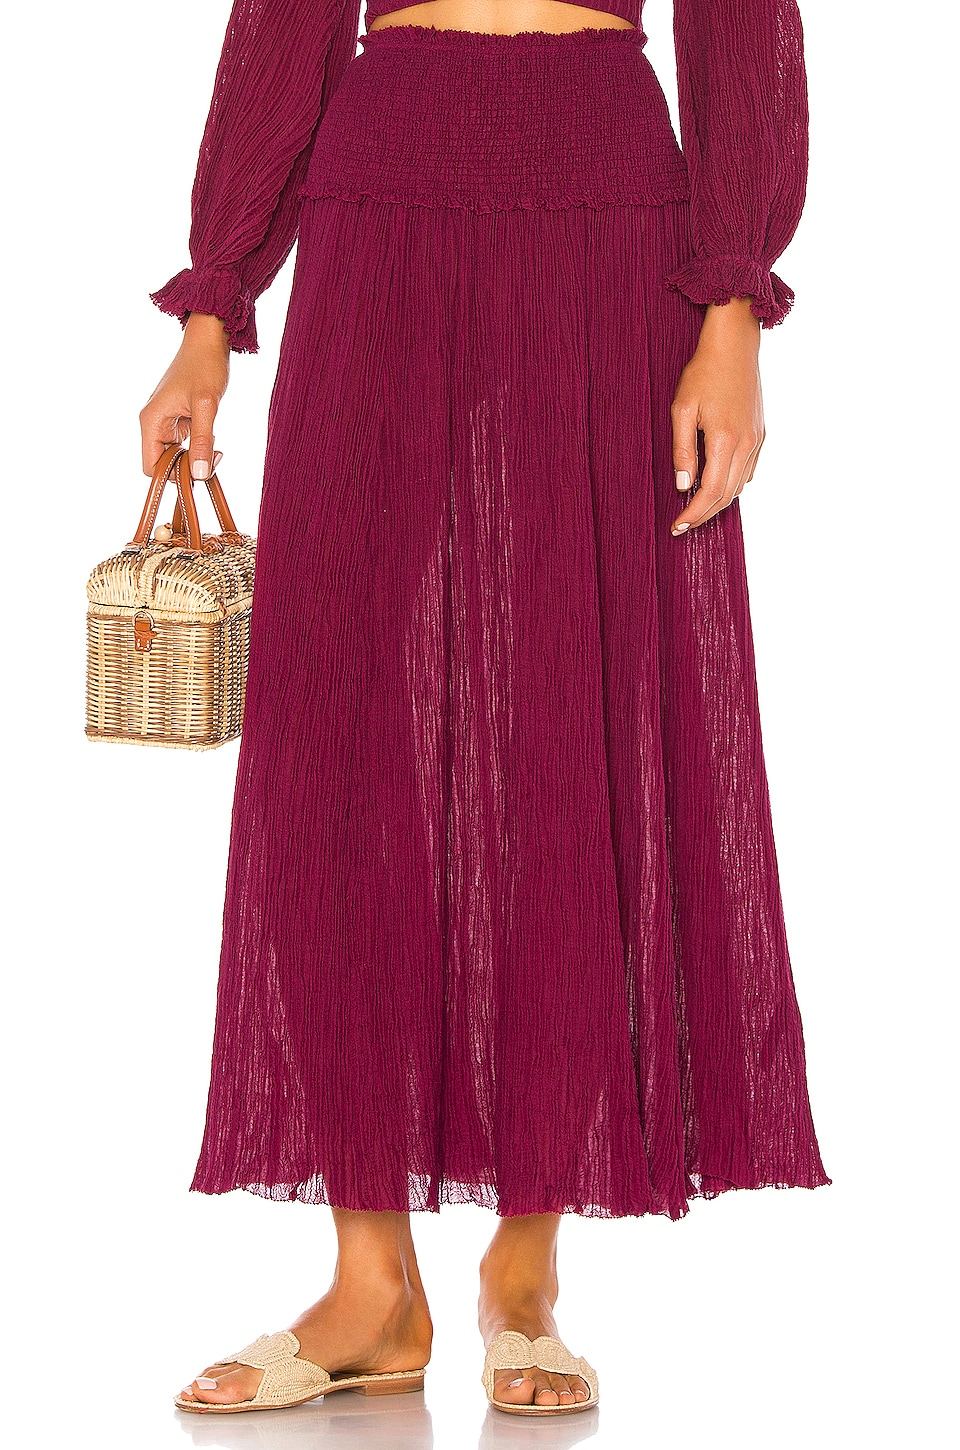 Zimmermann Suraya Shirred Waist Skirt in Burgundy